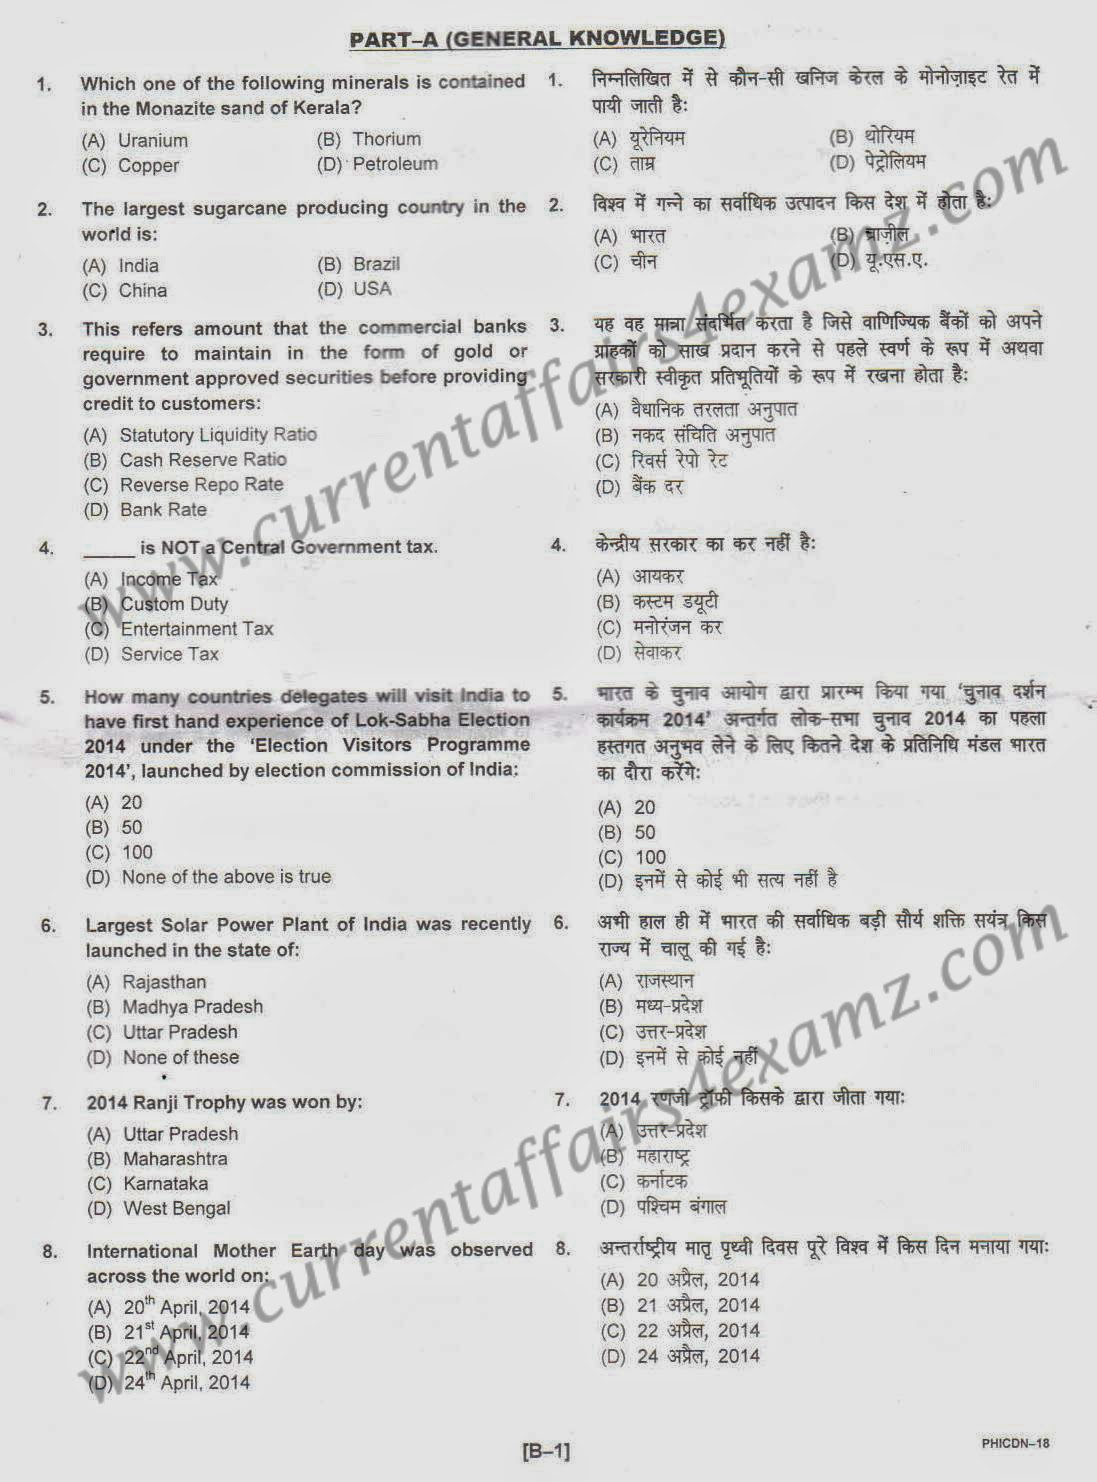 essay on menace of copying in examination Concept of examination malpractice essay a+ pages:7 words:  we will write a custom essay sample on concept of examination malpractice  but copying text is.